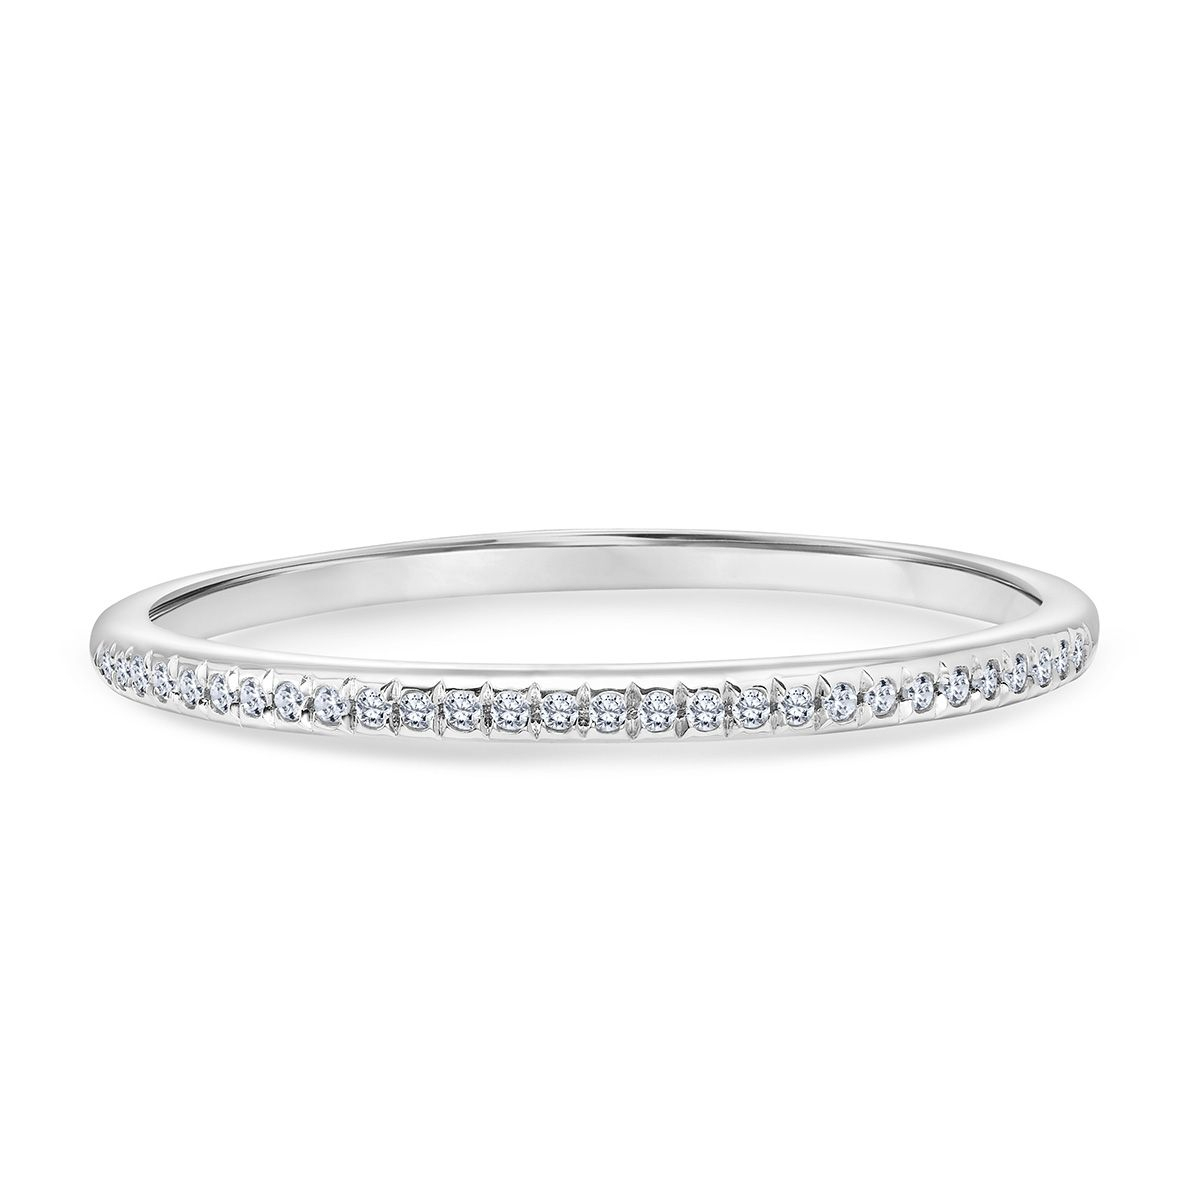 Rings | Diamonds International With Regard To Current Diamond Layered Anniversary Bands In White Gold (View 13 of 20)